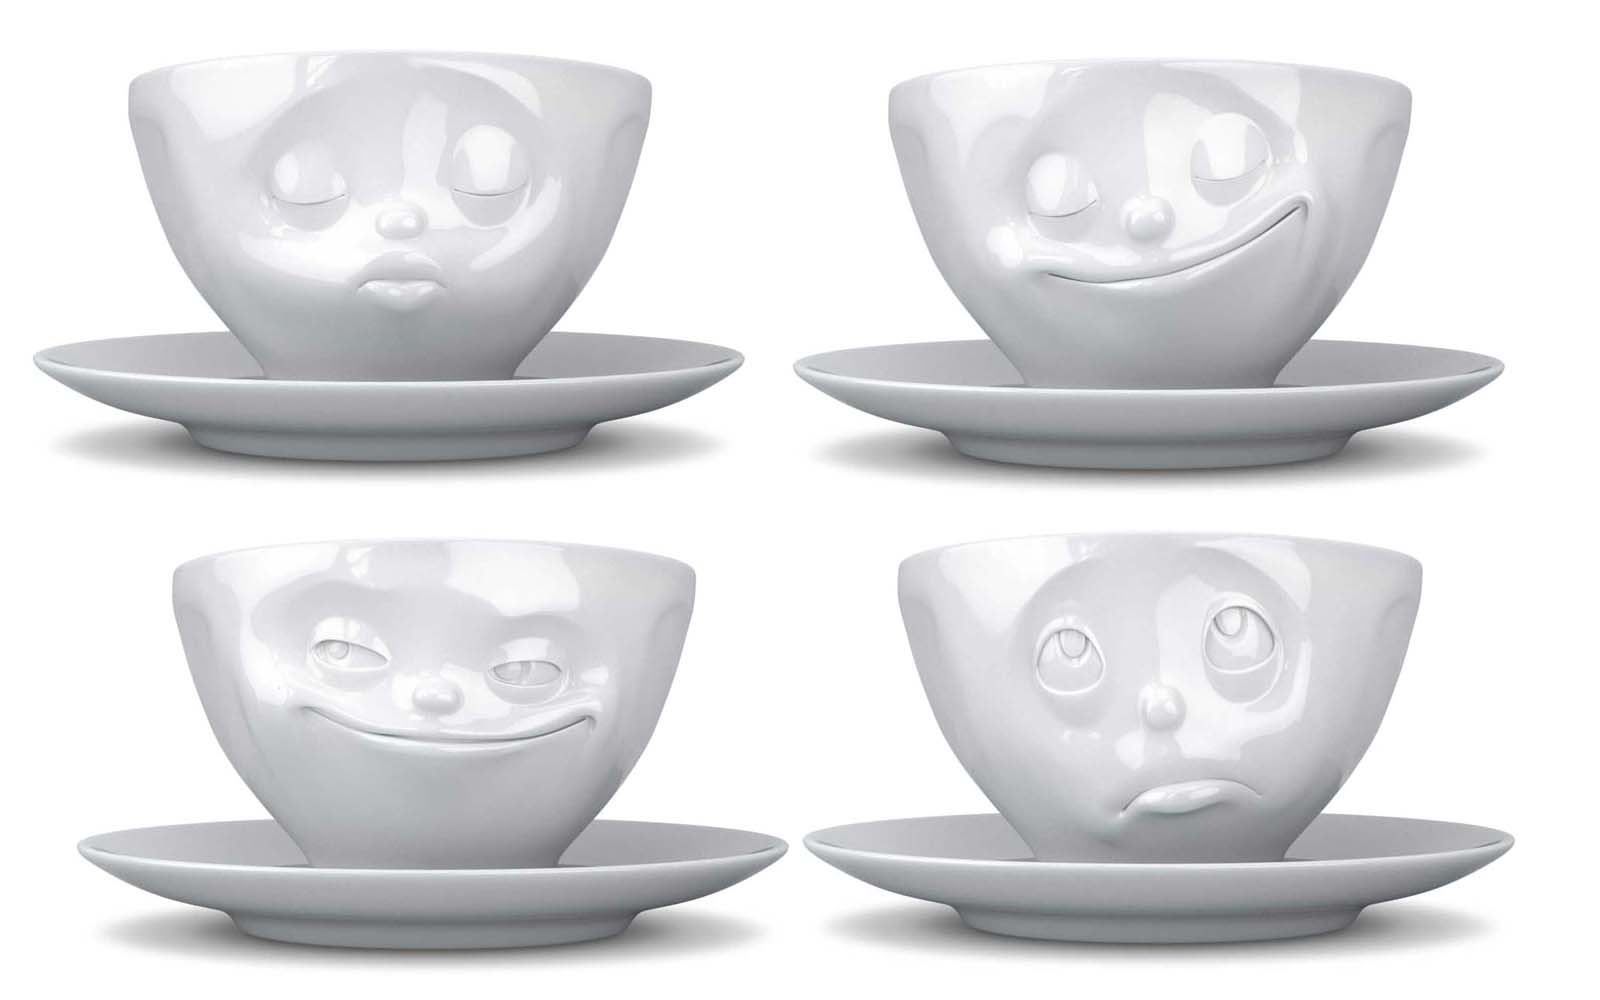 Tassen Uk : Tassen coffee cup saucer mug grinning kissing happy face